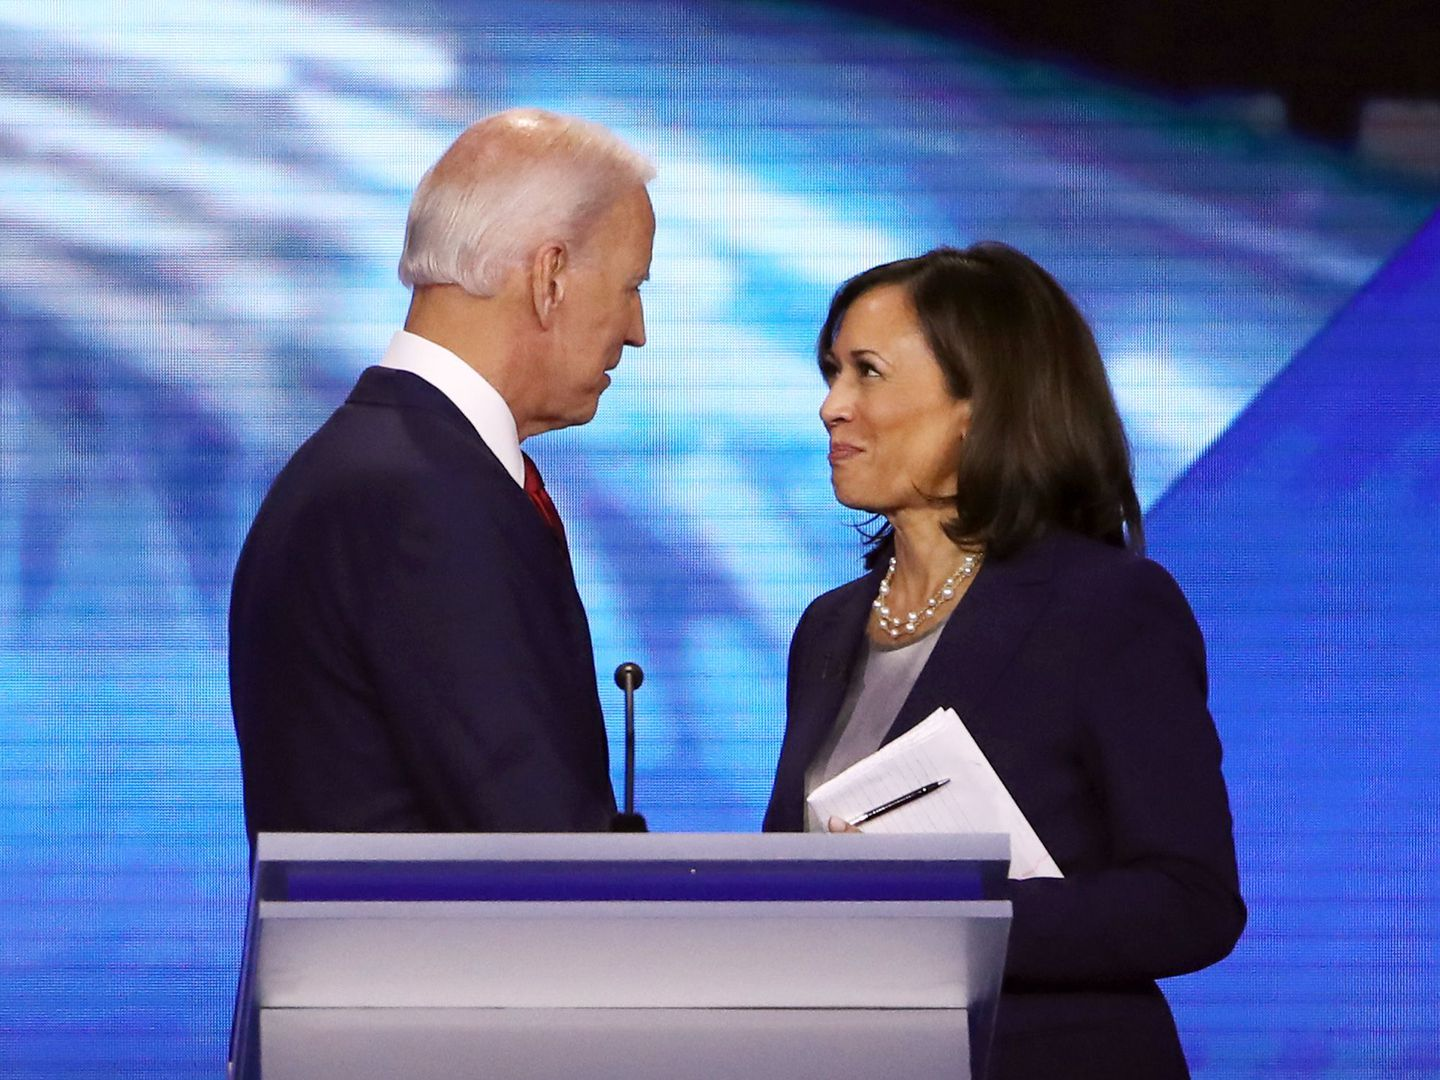 Biden shouldn't wait to pick running mate - The Boston Globe